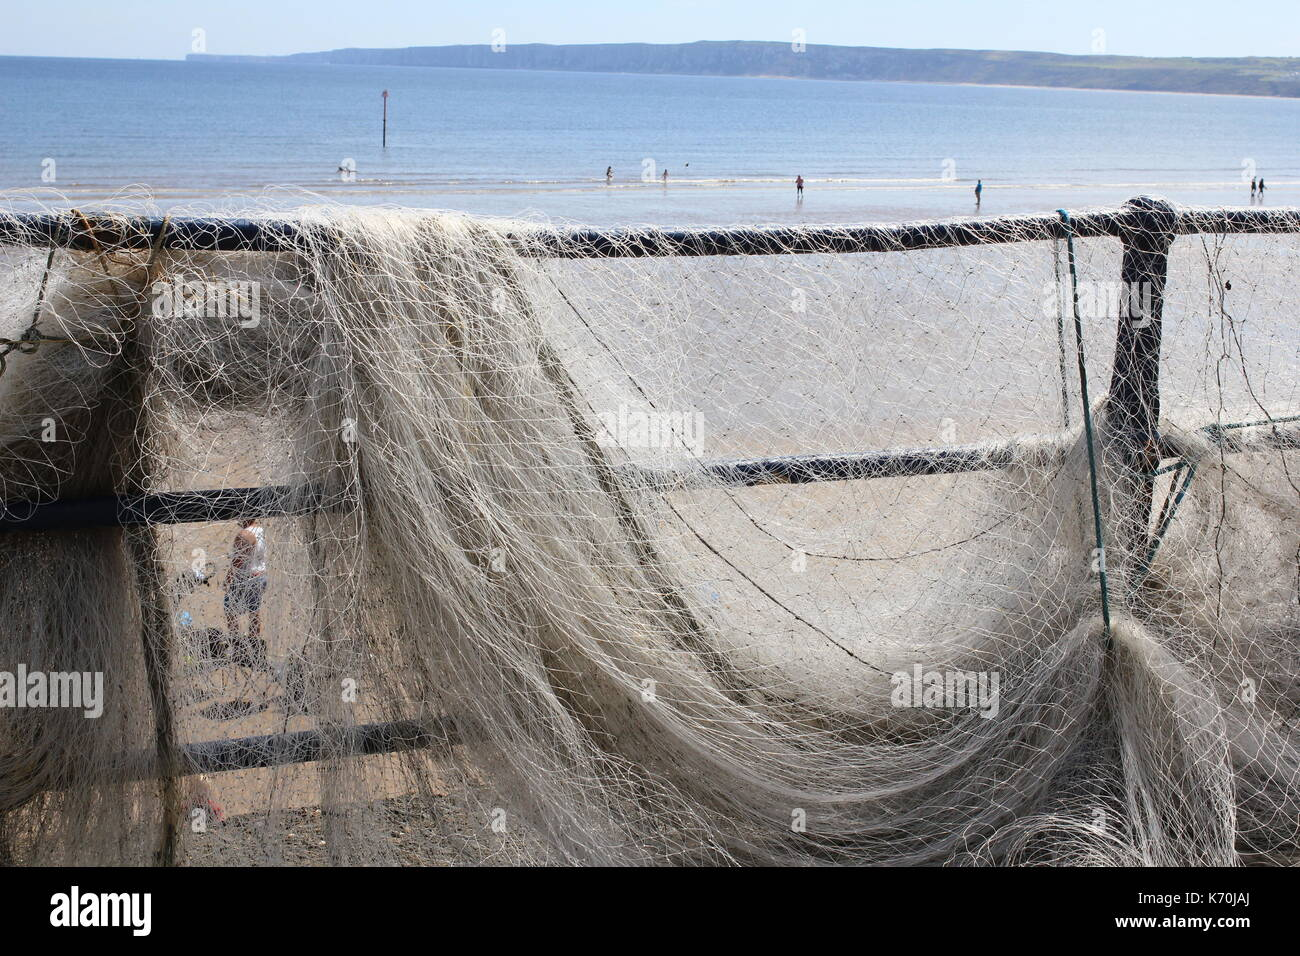 Fishing net drying on the seafront - Stock Image